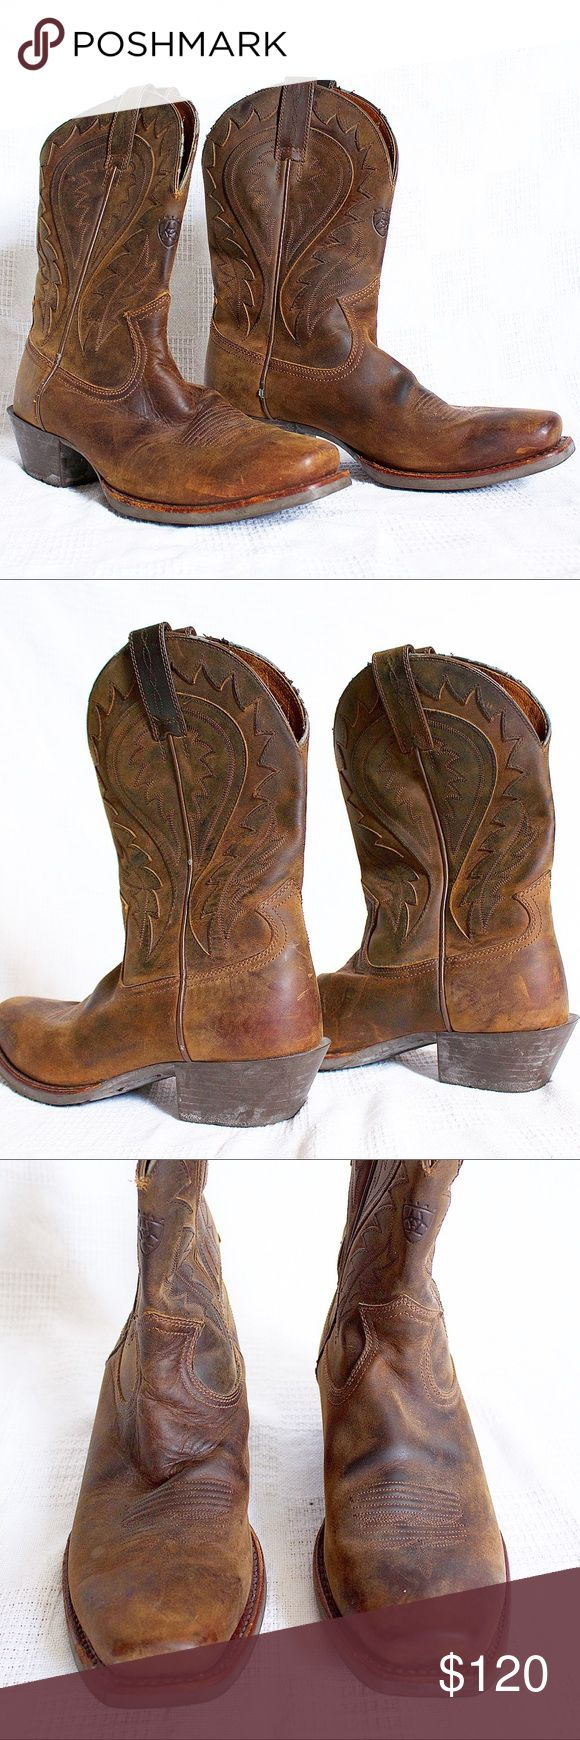 ❌SOLD❌ Ariat Men's Western Boots 9.5 ❌SOLD❌ Ariat Men's Western Boots Condition: 7/10 (some scratches throughout and on lining) Sold as shown in picture Dm for ?'s and purchasing Ariat Shoes Boots